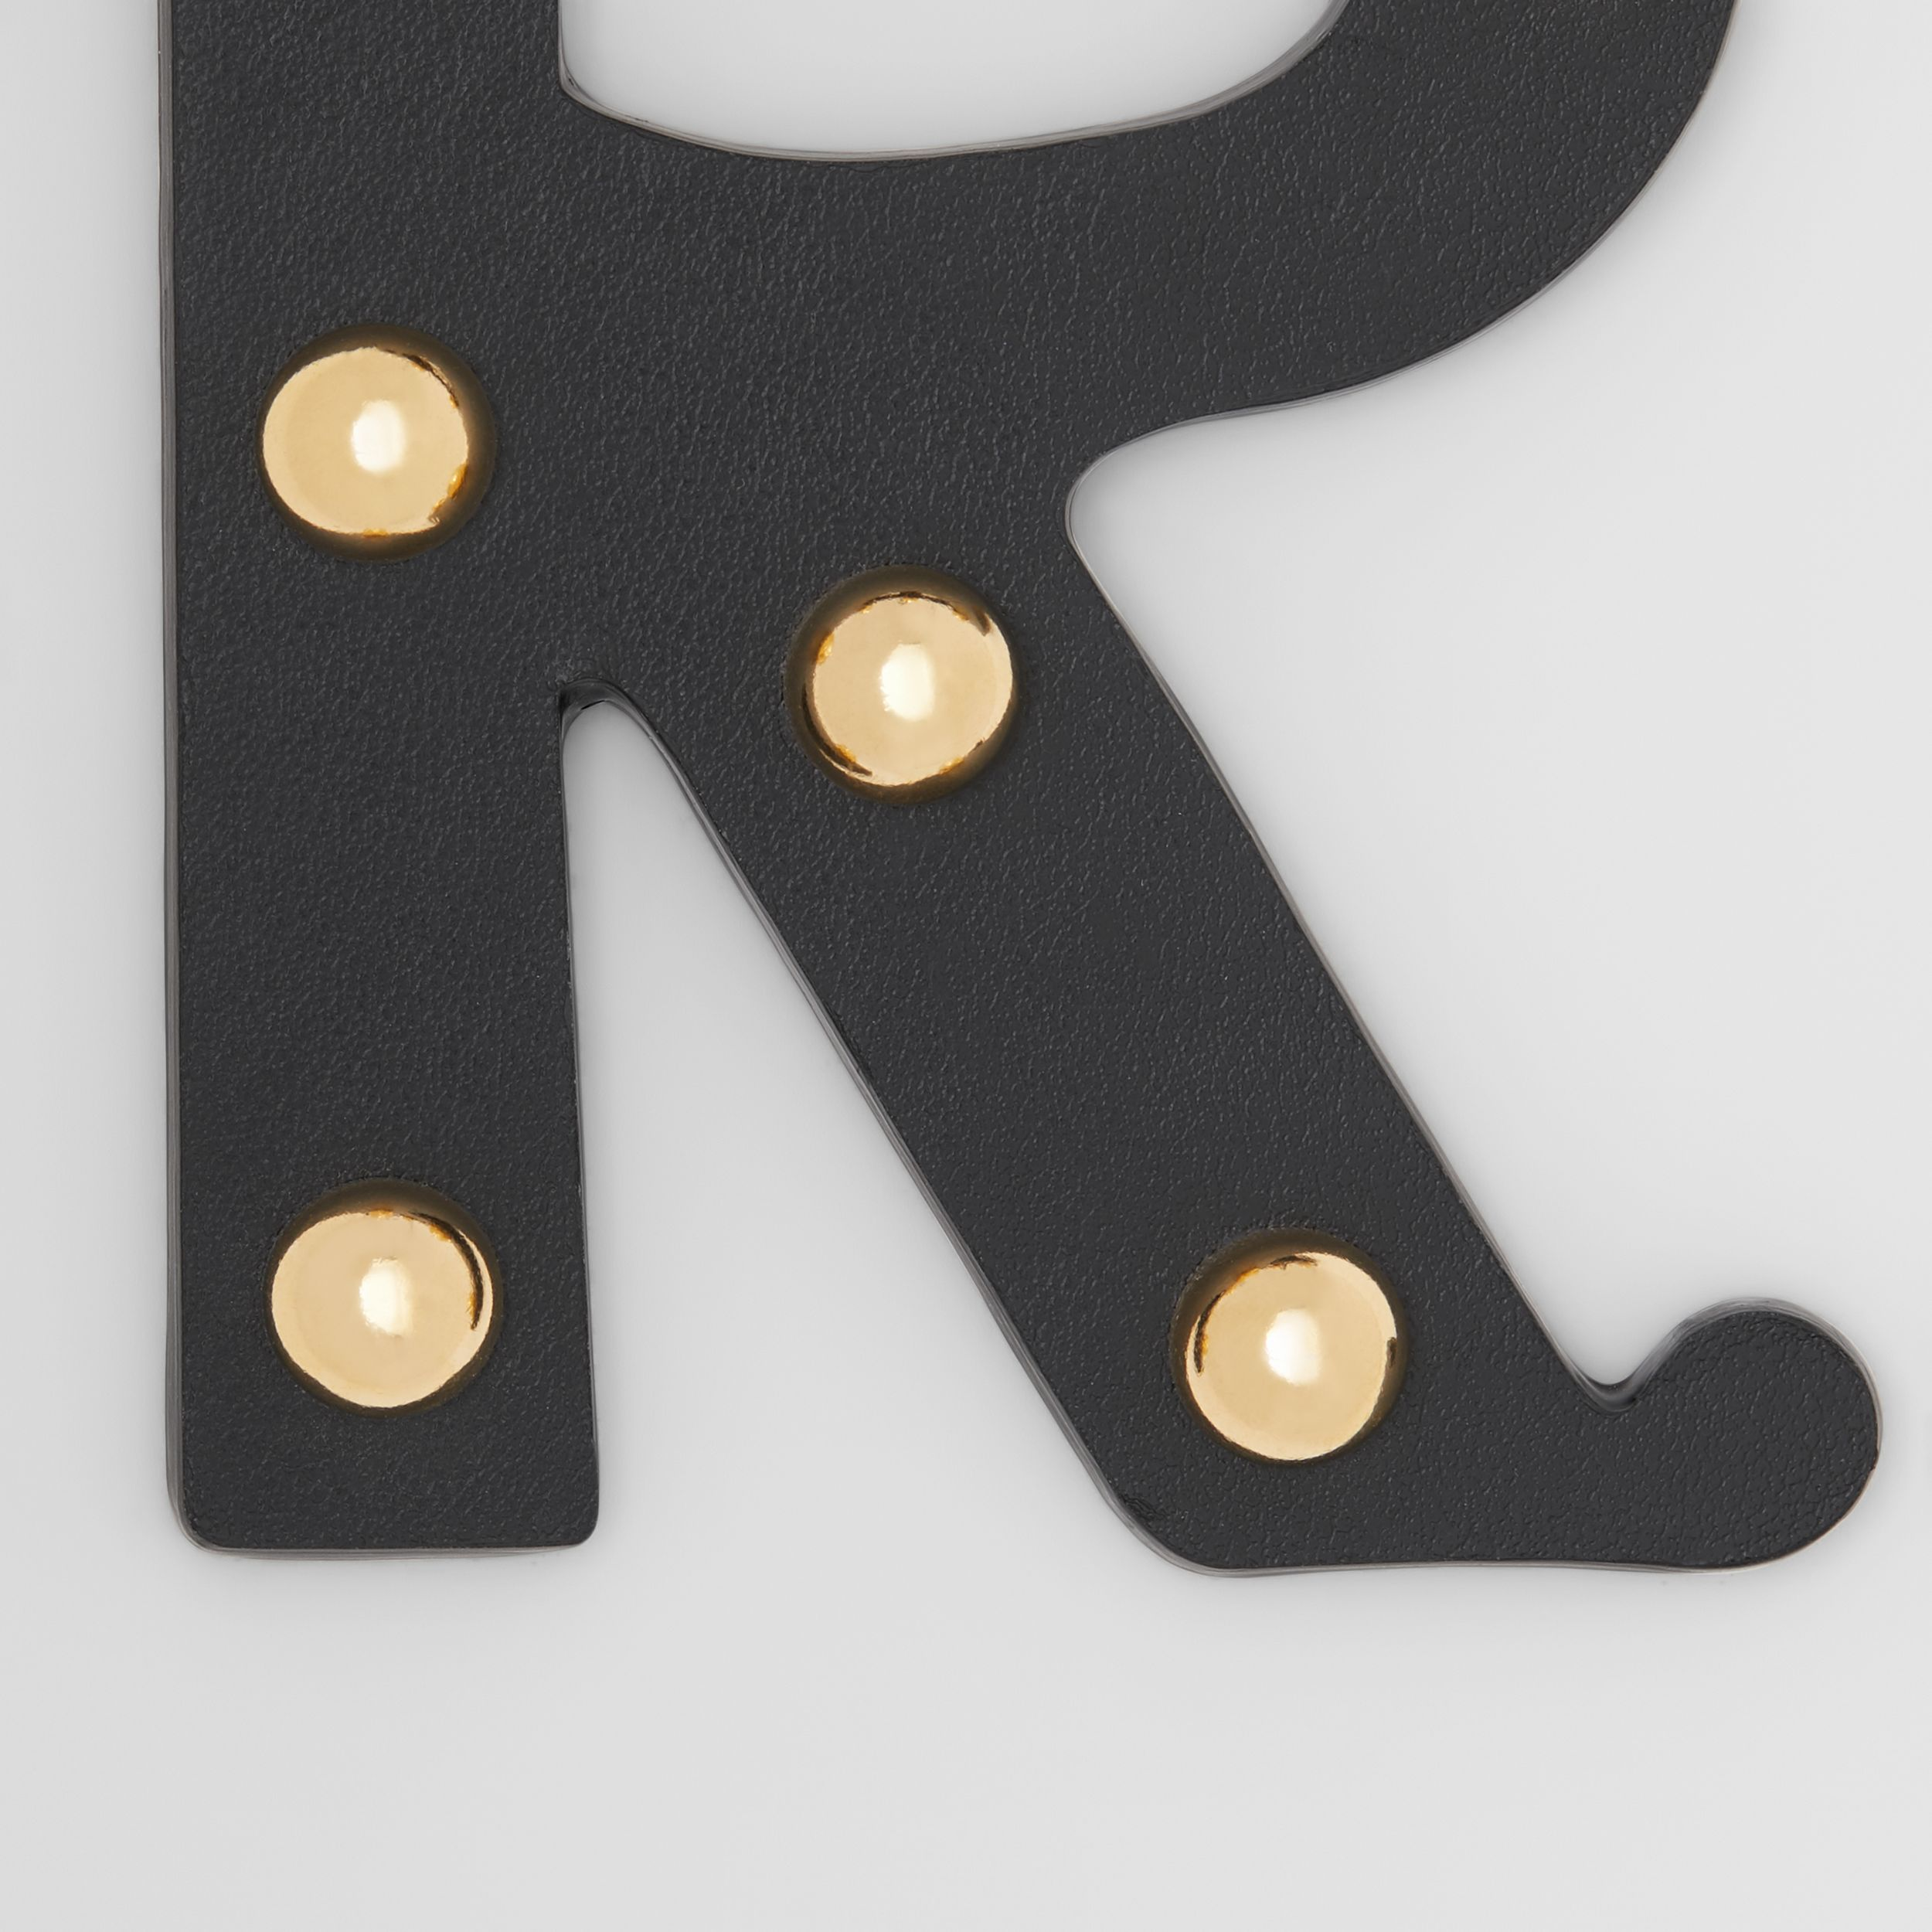 'R' Studded Leather Alphabet Charm in Black/light Gold | Burberry - 2